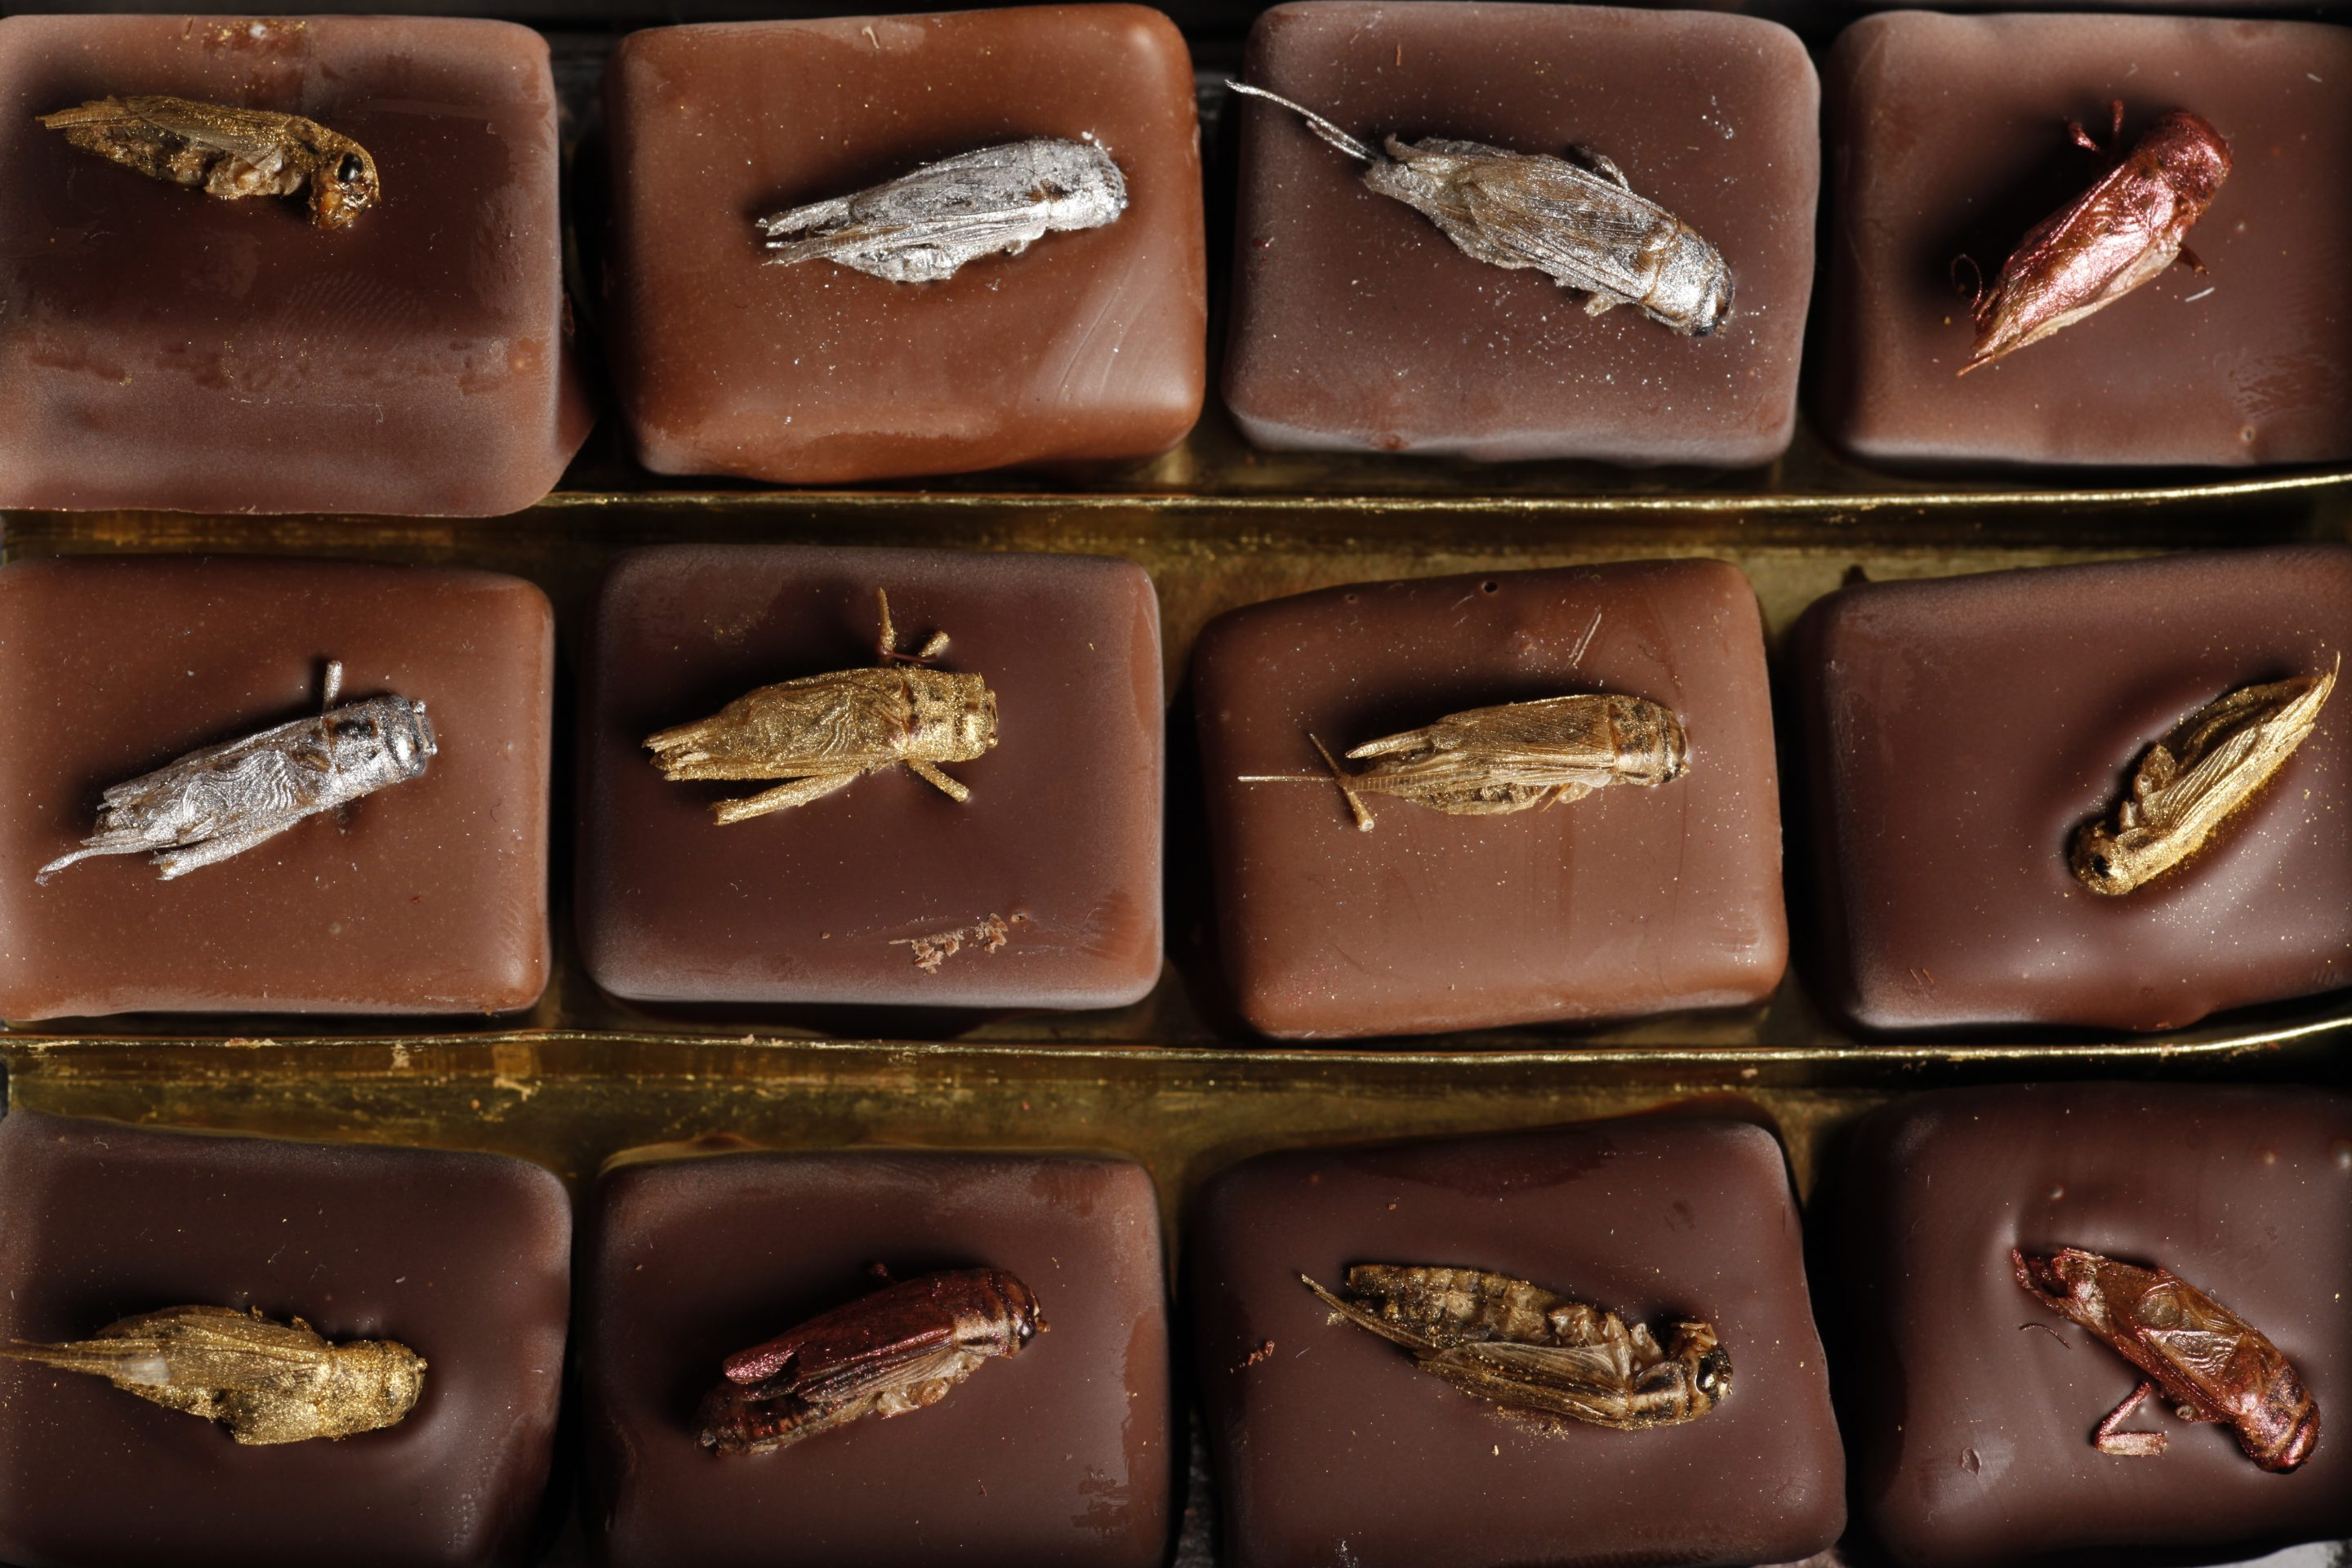 The Rise of Insect Based Foods In Our Diet